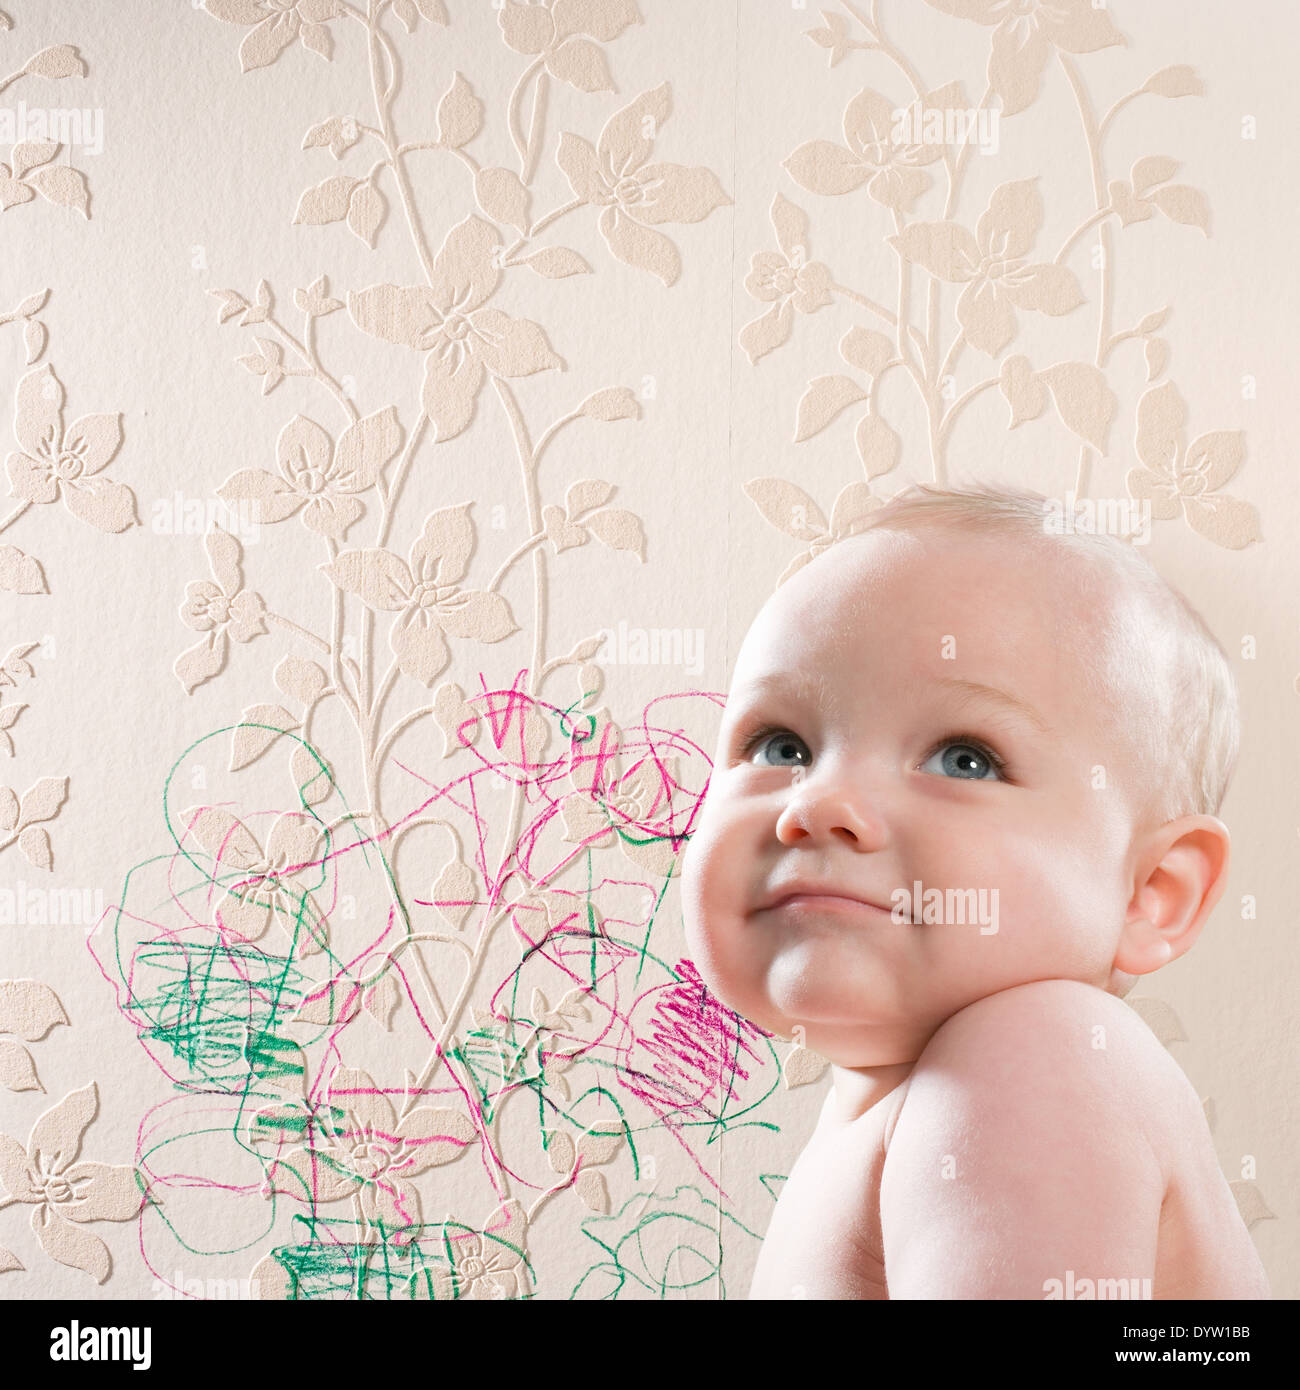 Cheeky baby - Stock Image